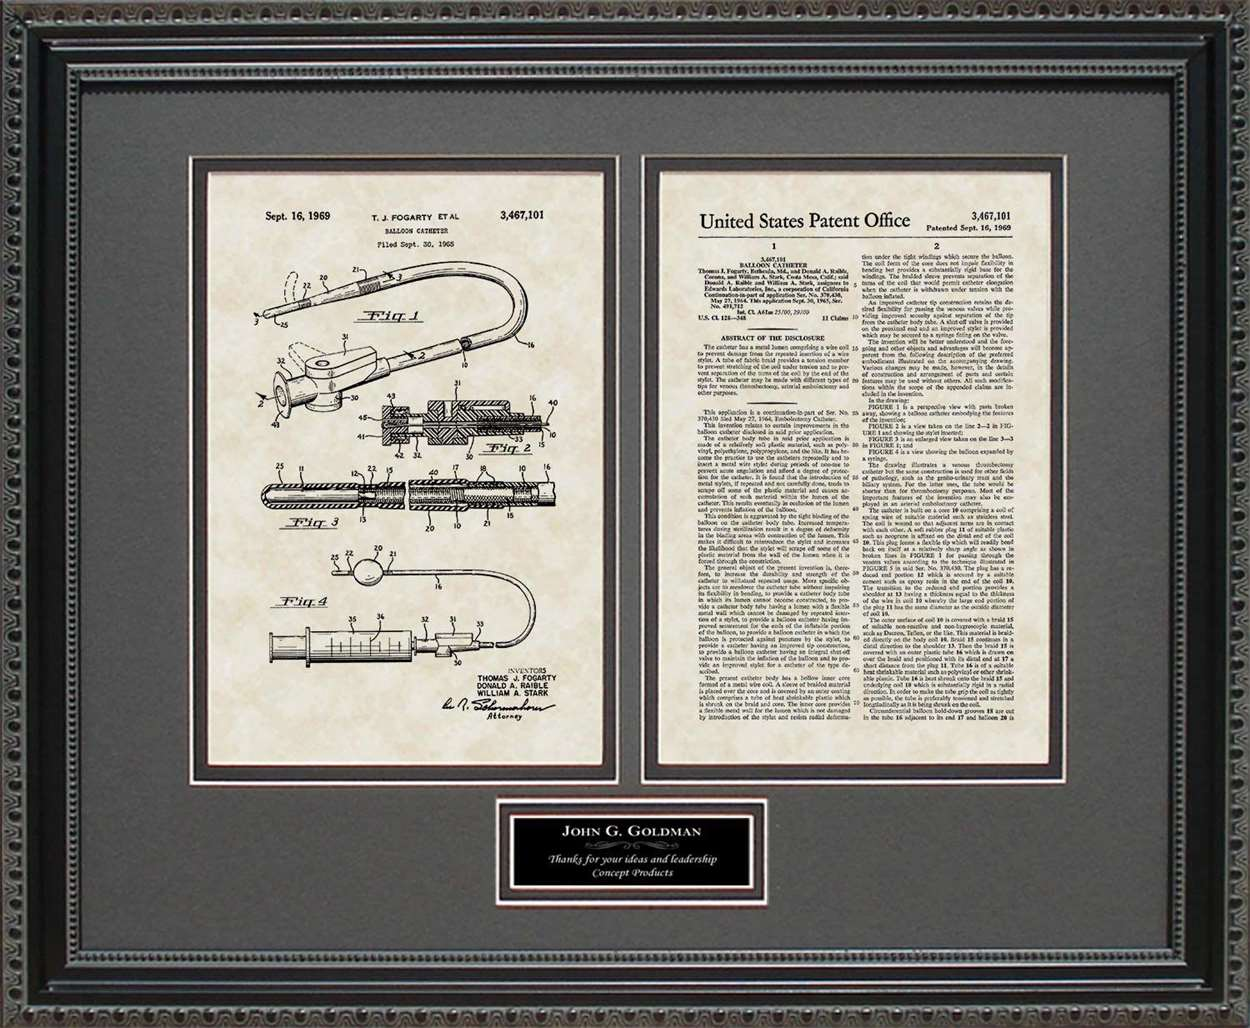 Personalized Balloon/Embolectomy Catheter Patent, Art & Copy, Fogarty, 1965